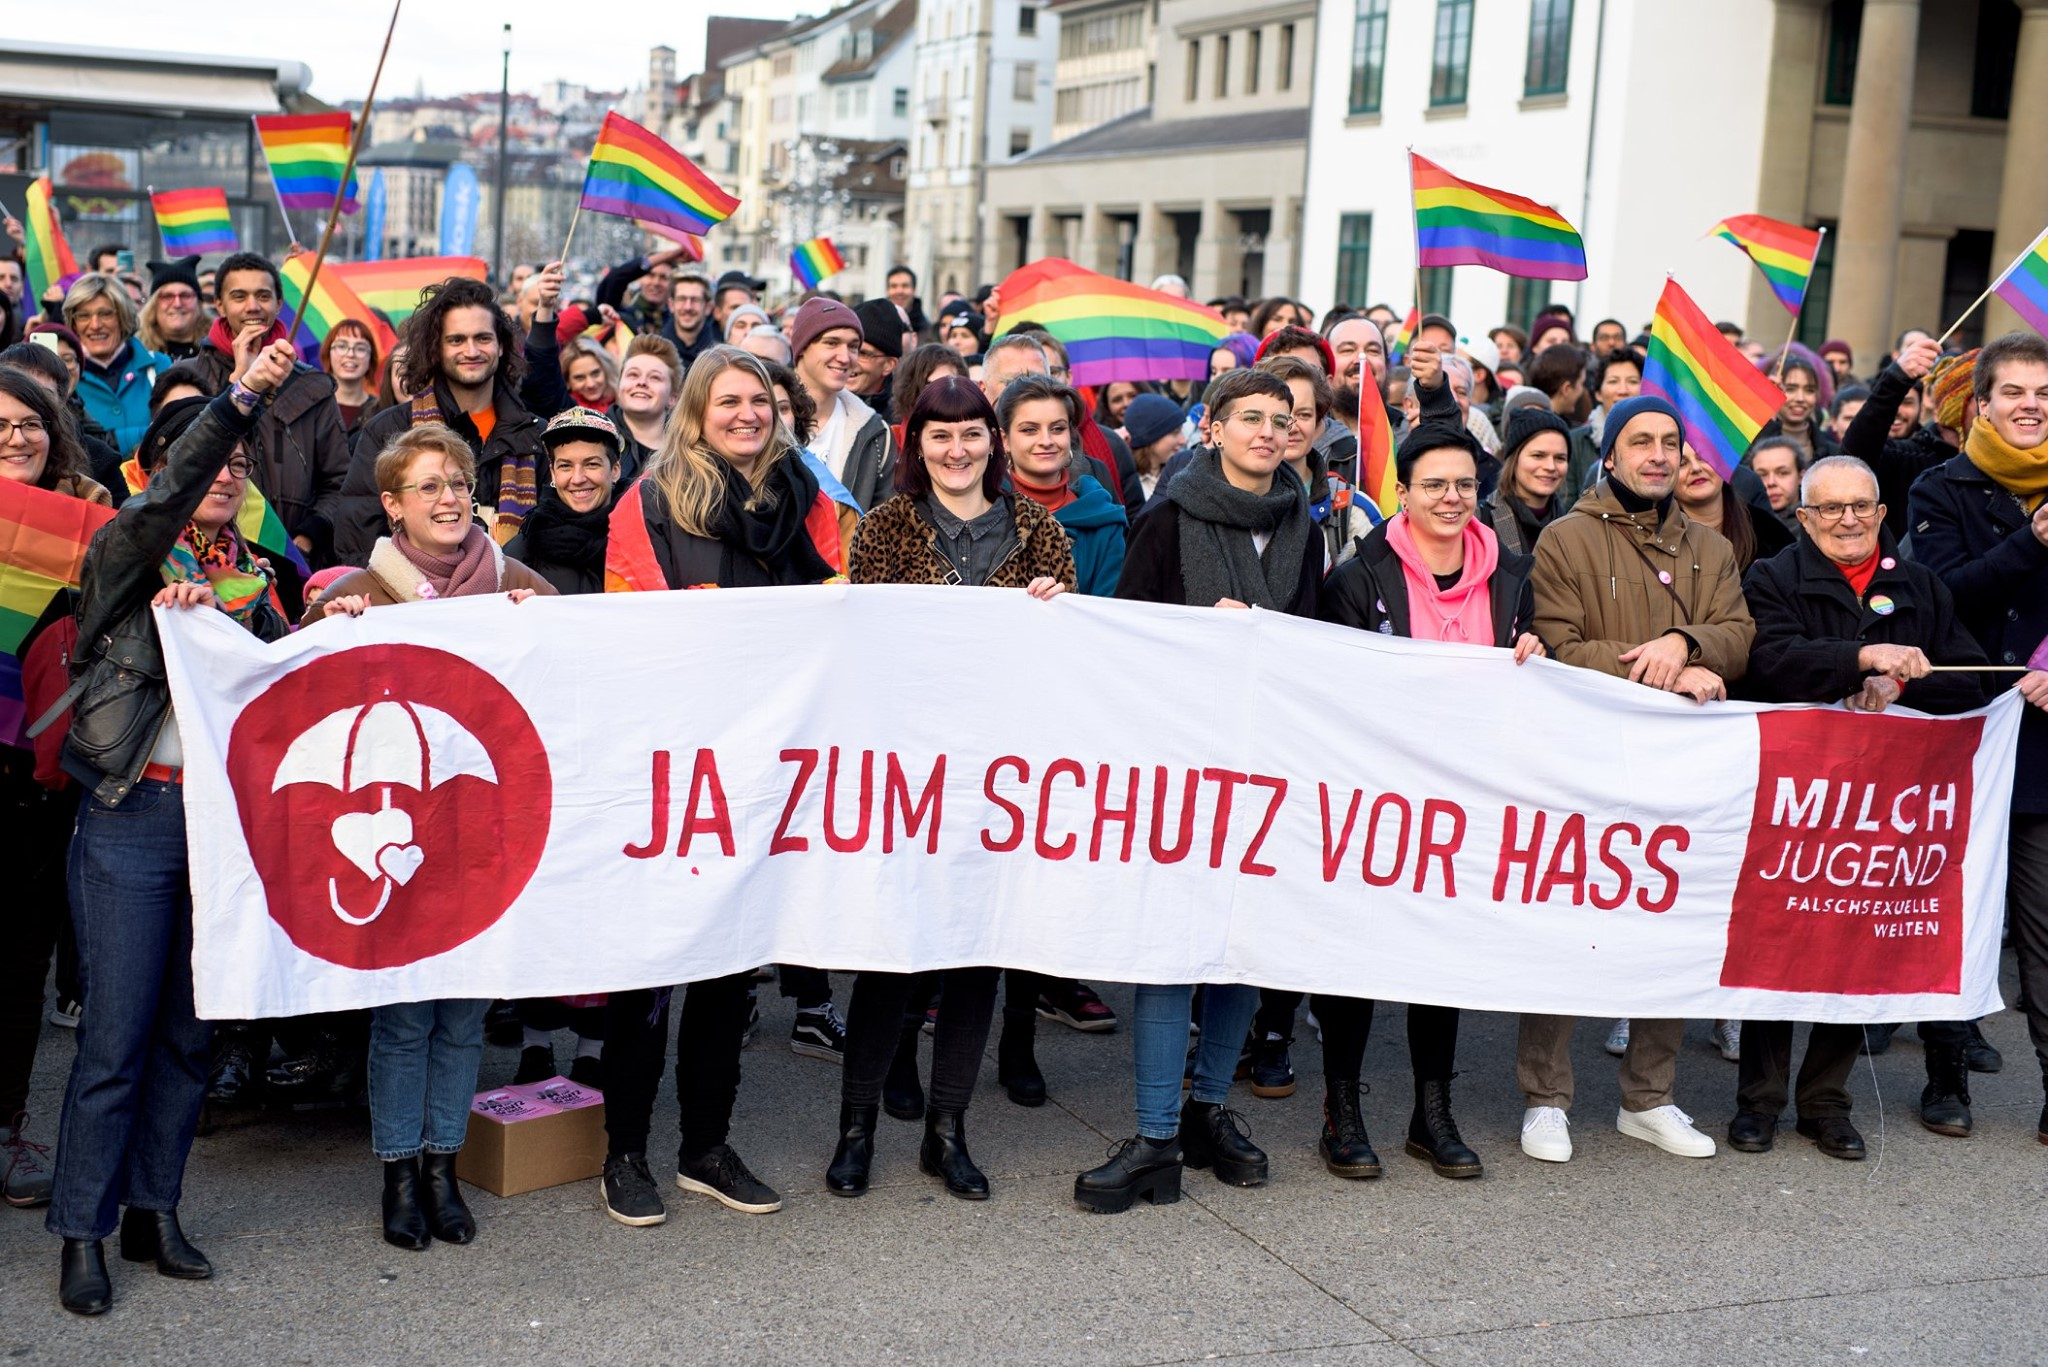 Switzerland voted in favour of the anti-homophobia law